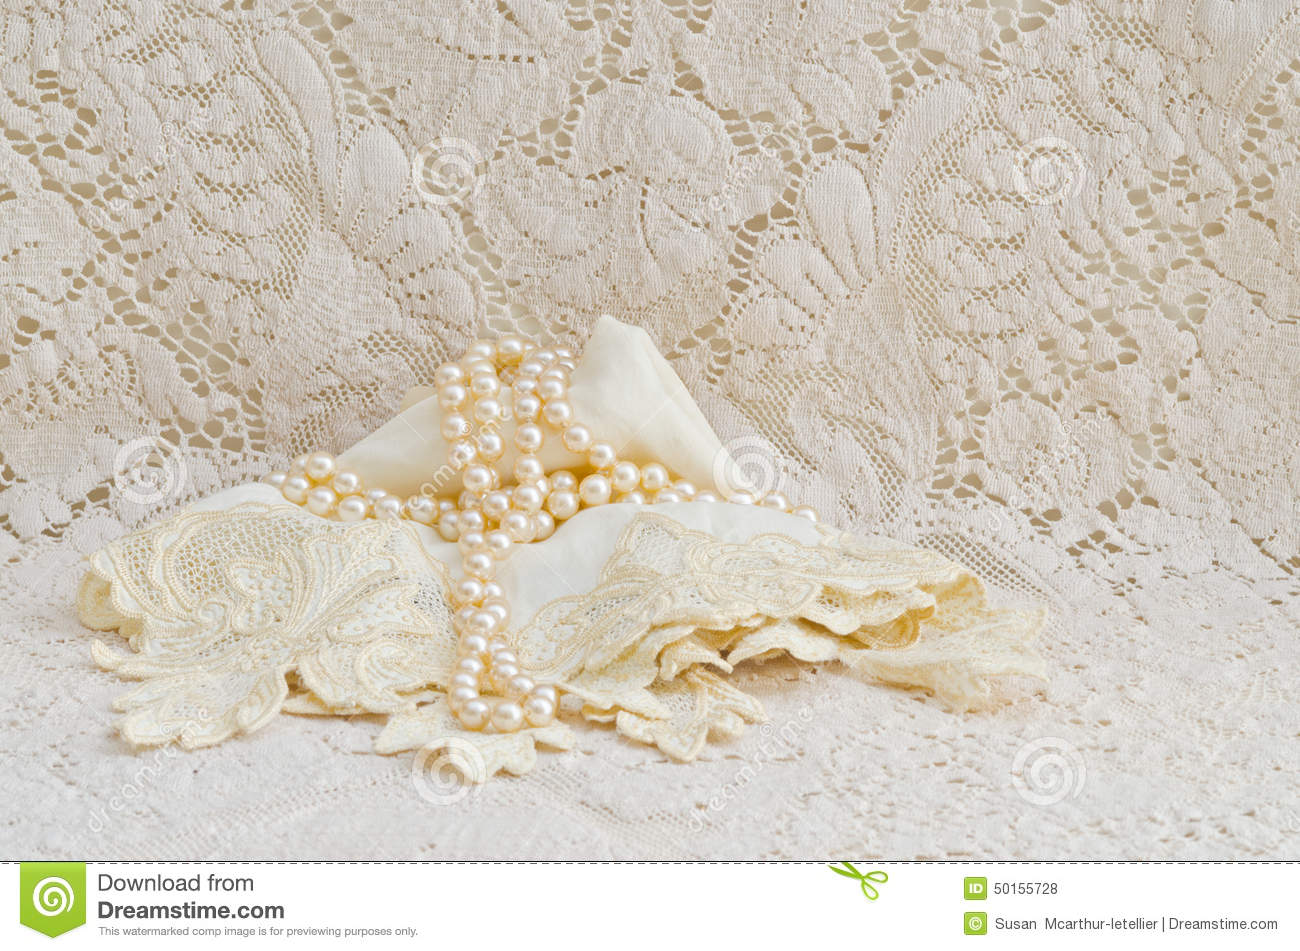 Vintage Lace Handkerchief And Pearls Stock Photo  Image